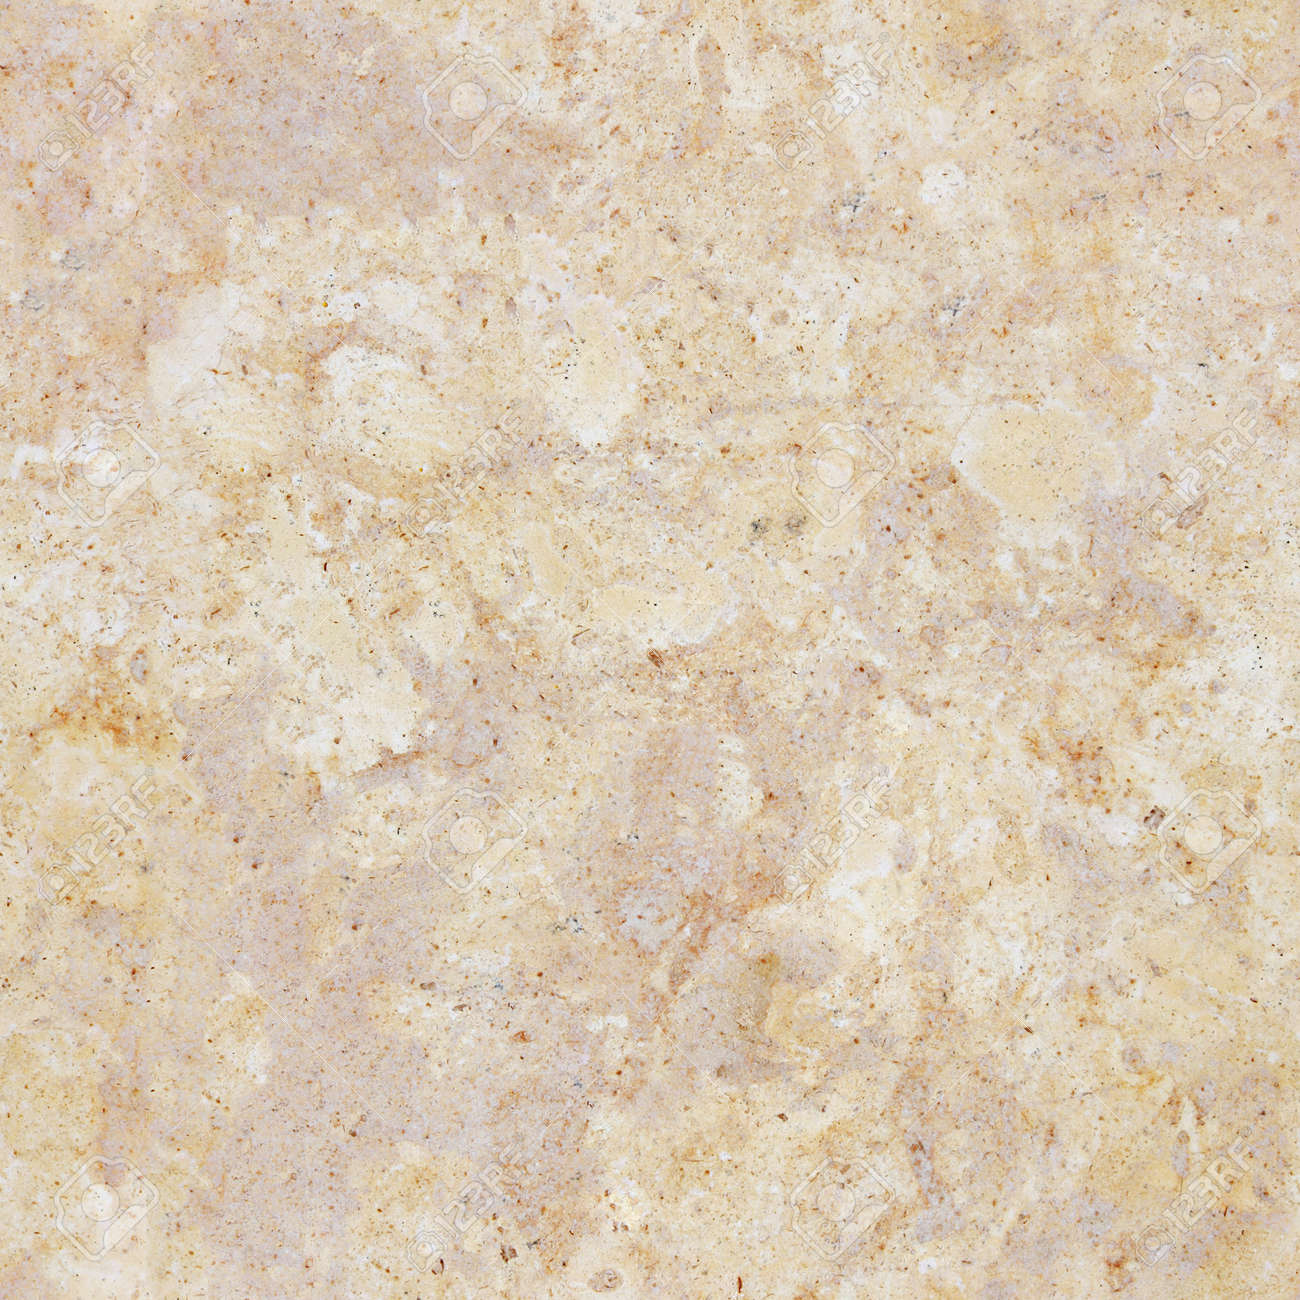 Seamless Beige Marble Stone Wall Texture Tiled Cream Marble Stock Photo Picture And Royalty Free Image Image 48245843